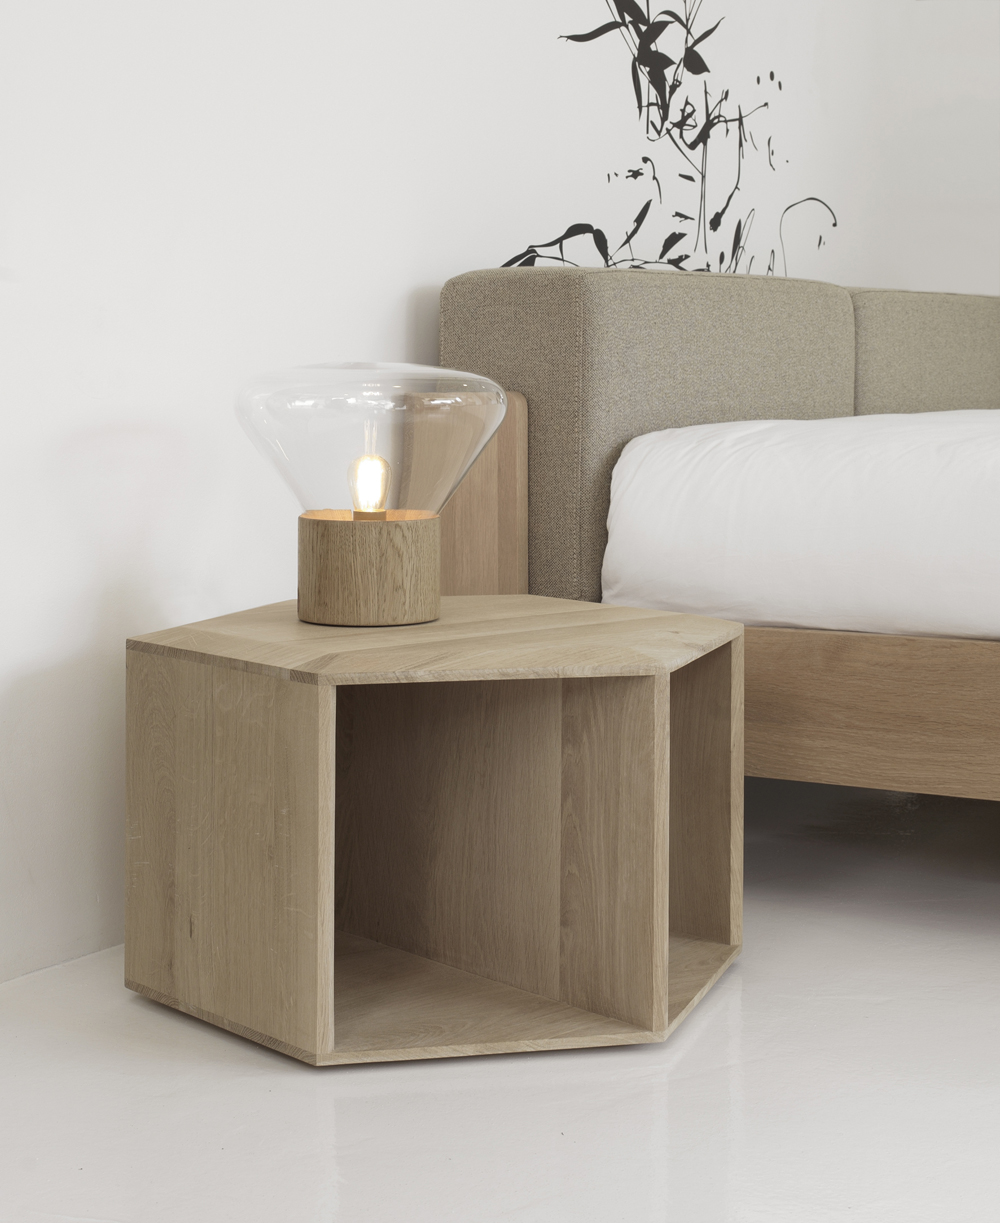 Minimalist And Functional Hexa Coffee Table Digsdigs